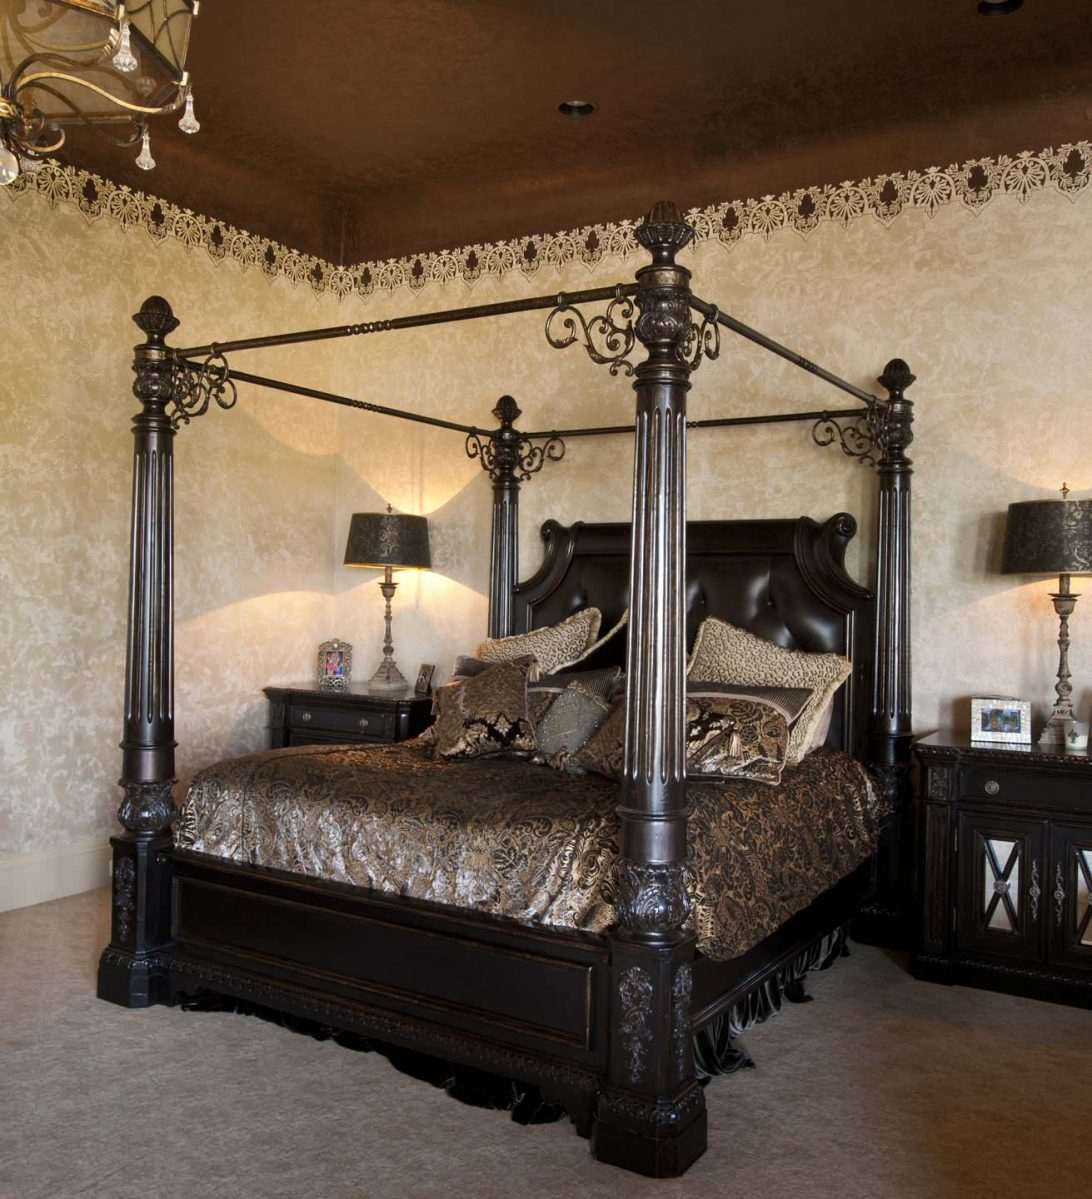 Queen size four poster bed 2 & Queen Size Four Poster Bed - Foter